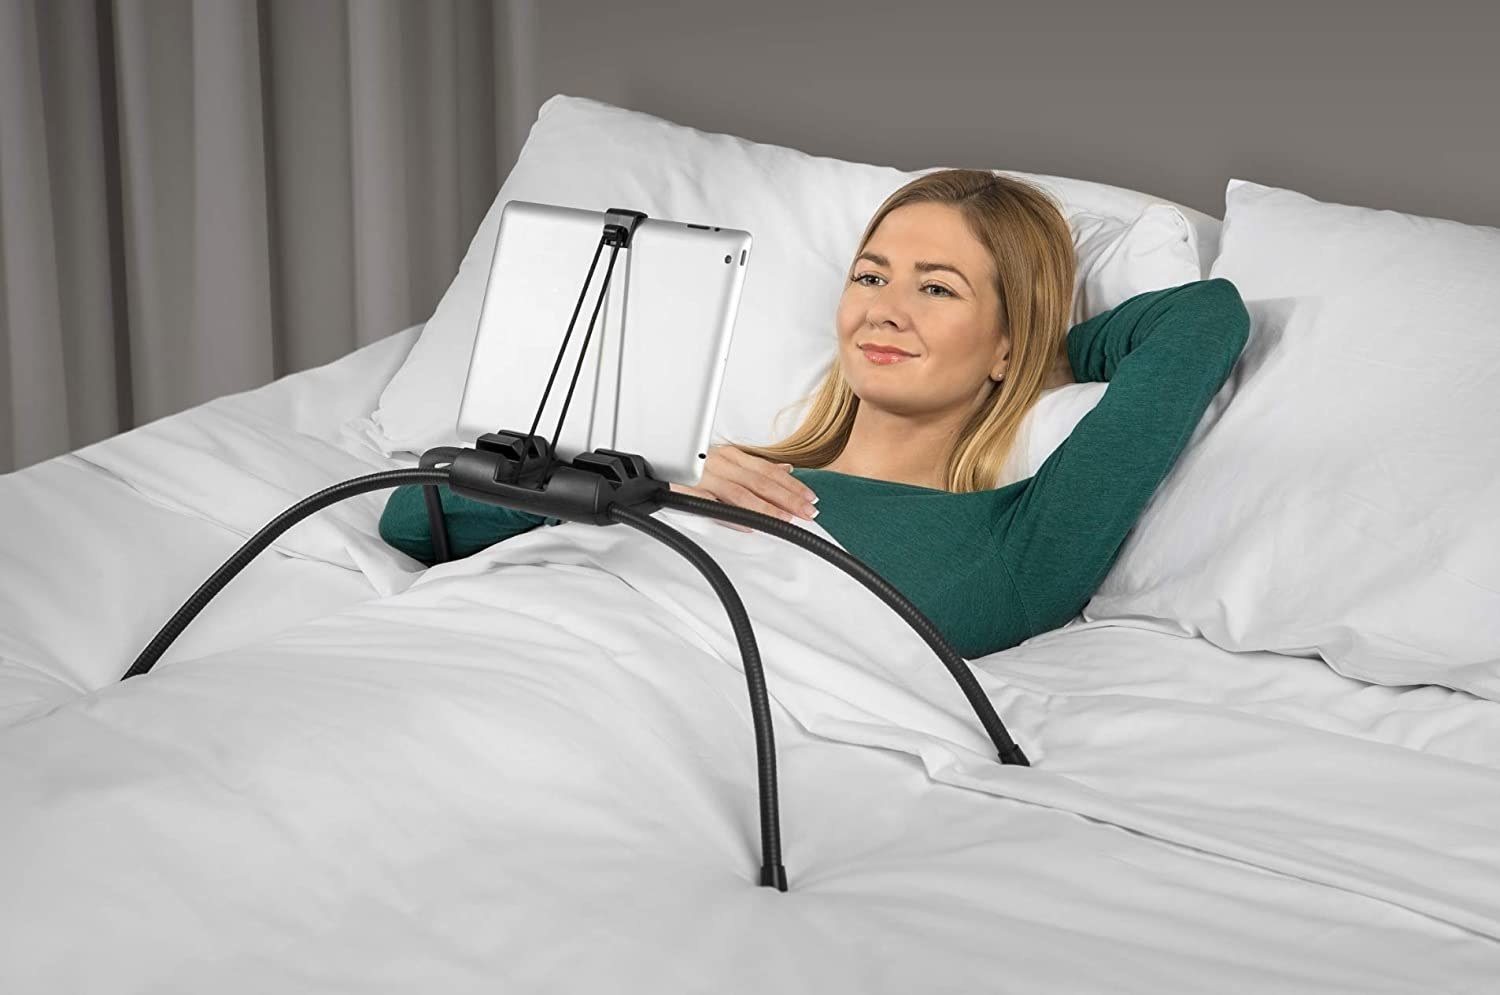 A person using the device while in bed